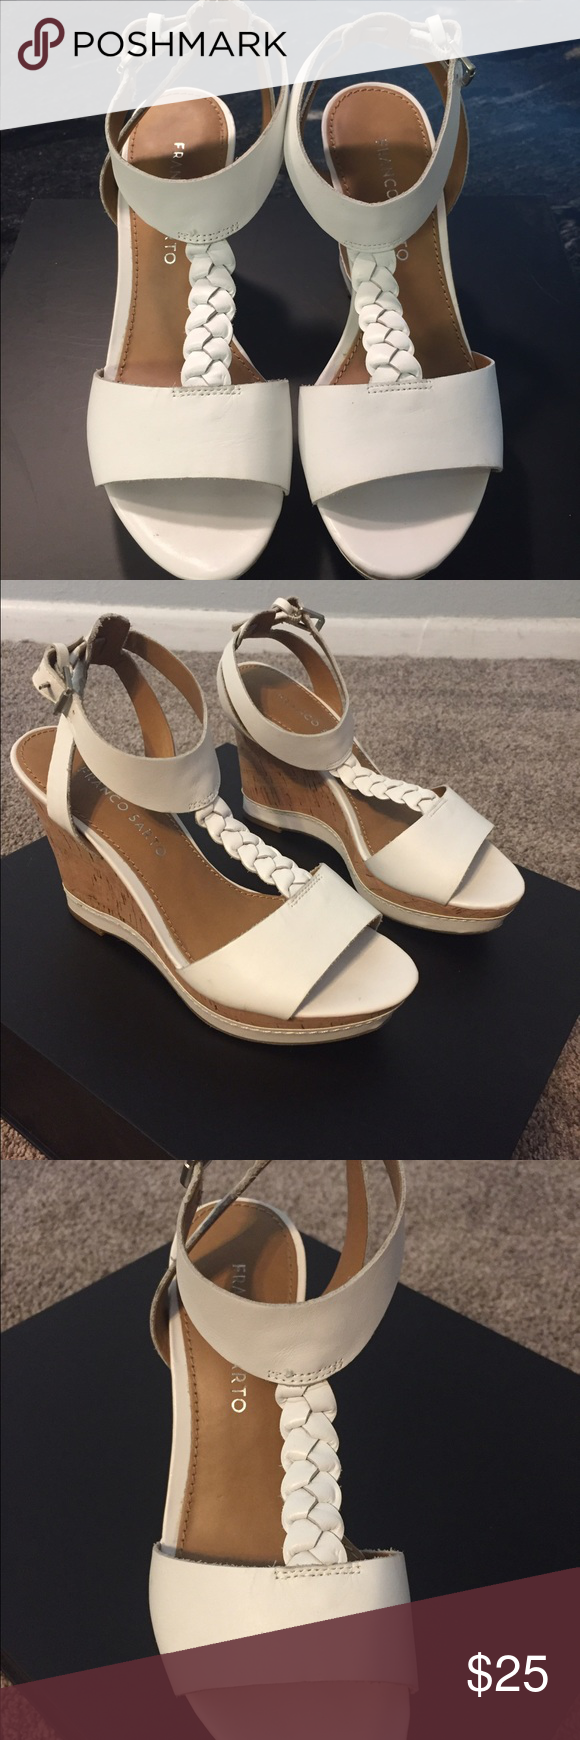 Franco Sarto wedge sandals size 5 1/2 Super cute white leather and cork wedge sandals. Like new. Perfect for spring! Franco Sarto Shoes Sandals